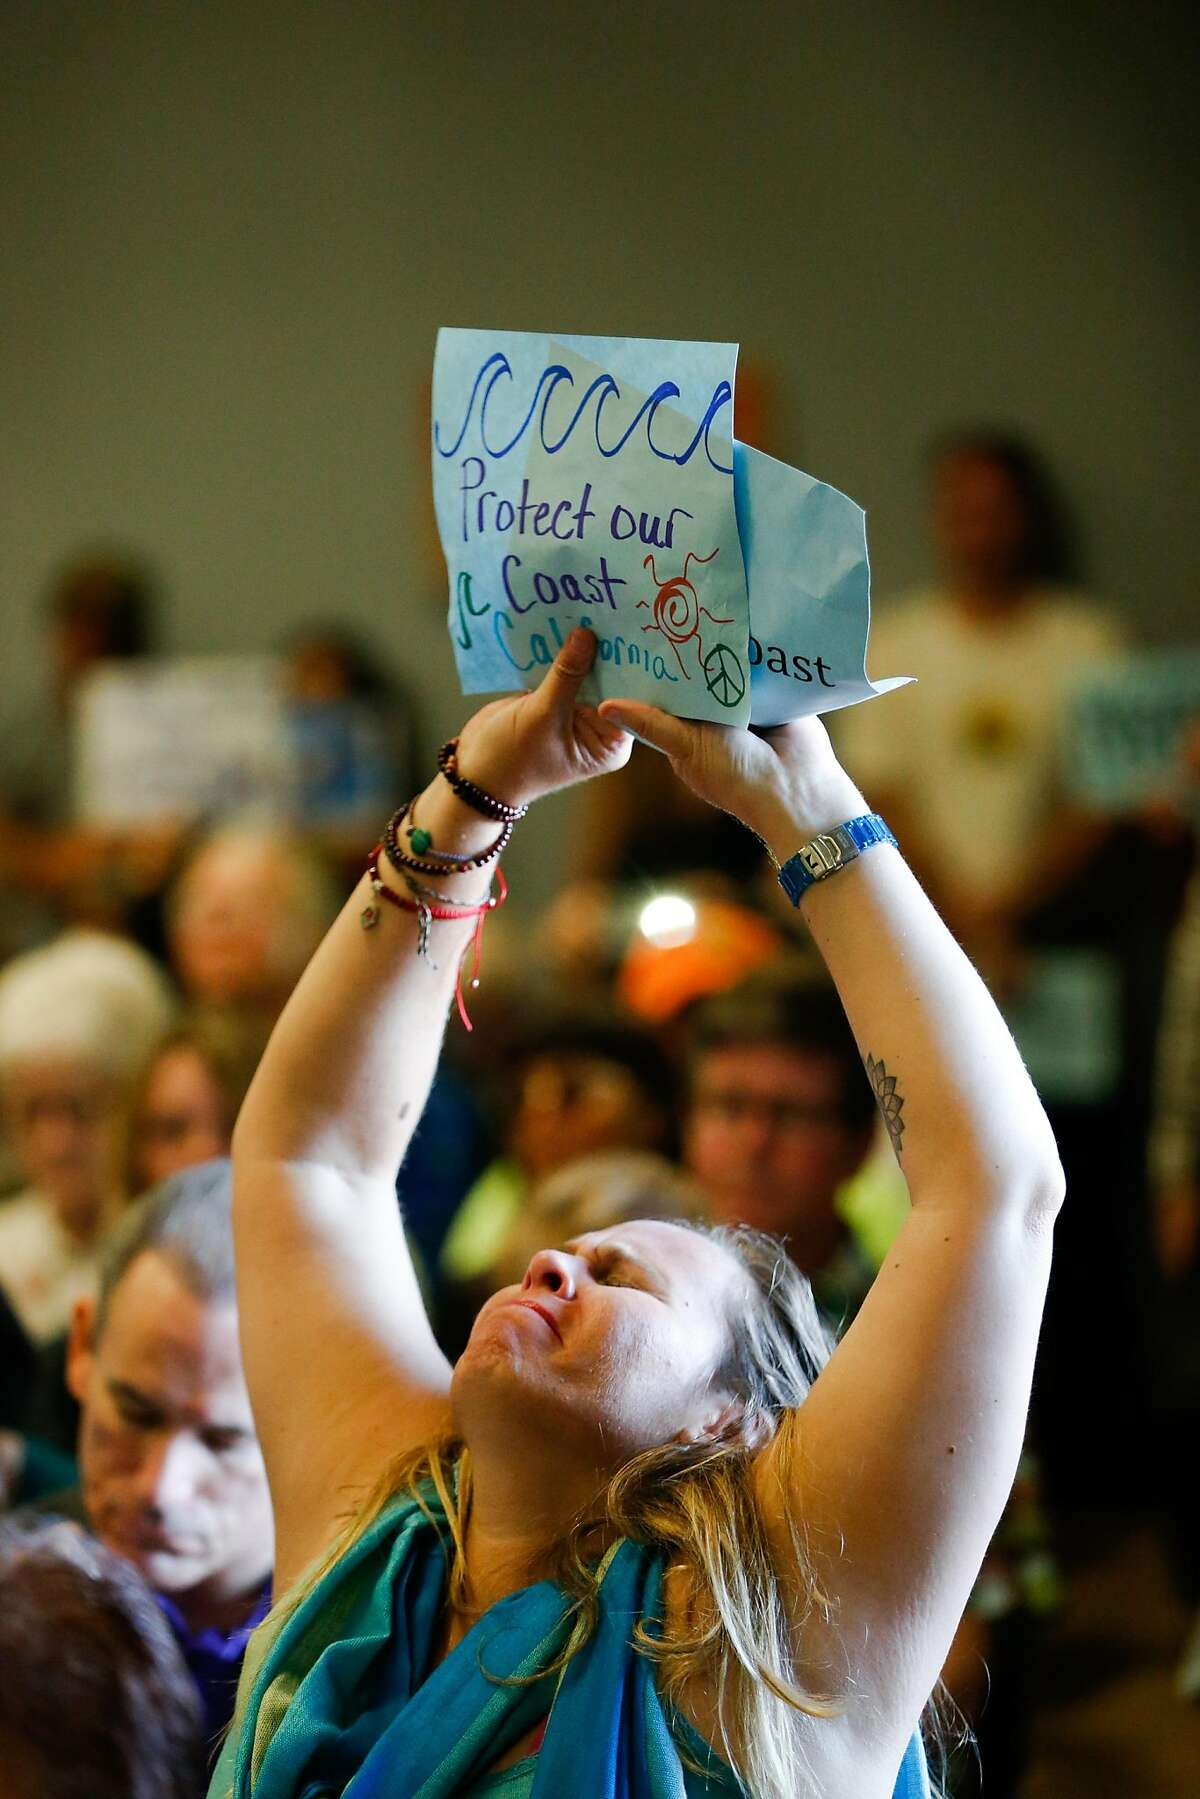 Genoa Robertson reacts as California Coastal Commission Charles Lester speaks at the Morro Bay Community Center in Morro Bay , Calif. on Wednesday, February 10, 2016. The proposal to fire California Coastal Commission Executive Director Charles Lester has set off furor throughout the state.